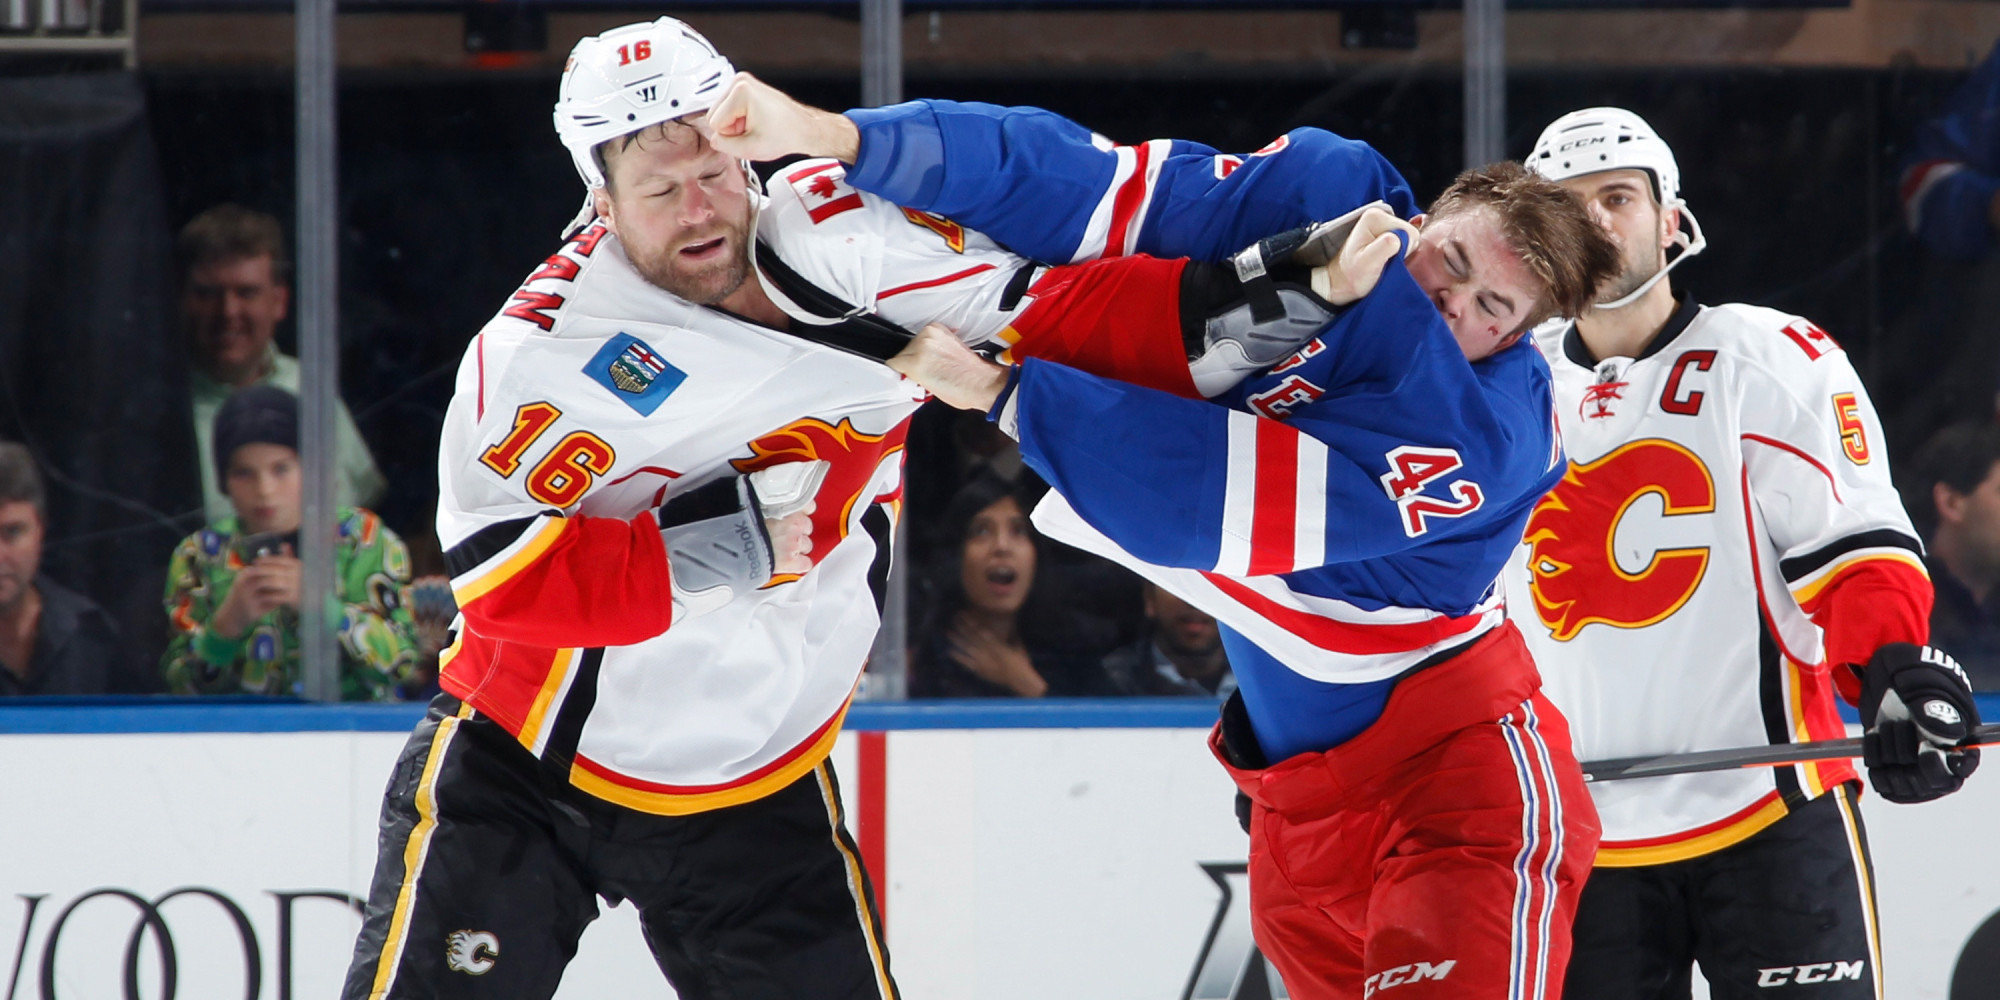 an argument in favor of fighting in hockey